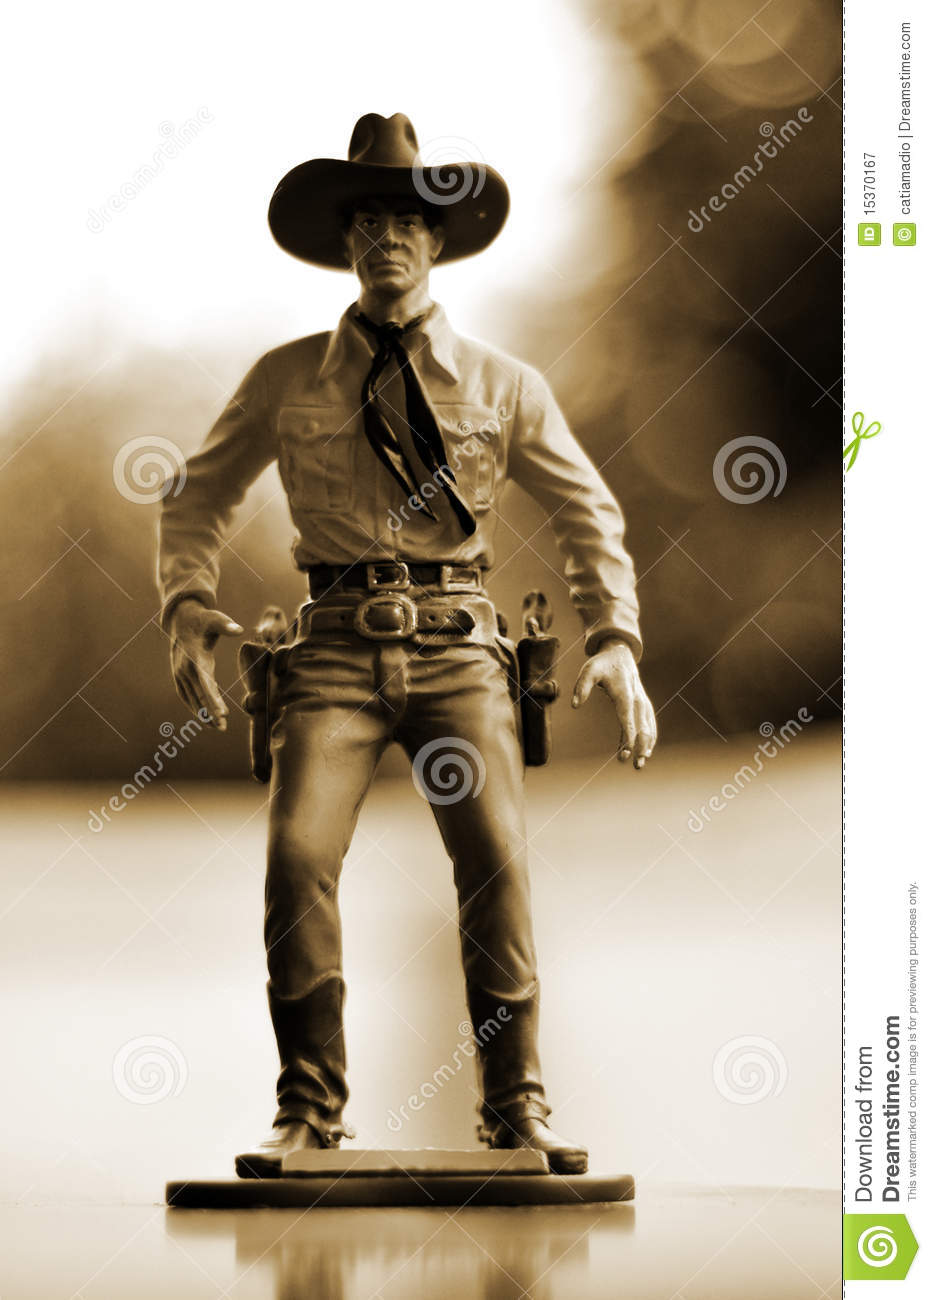 How To Figure Car Payment >> Cowboy Toy Figure Royalty Free Stock Photography - Image: 15370167